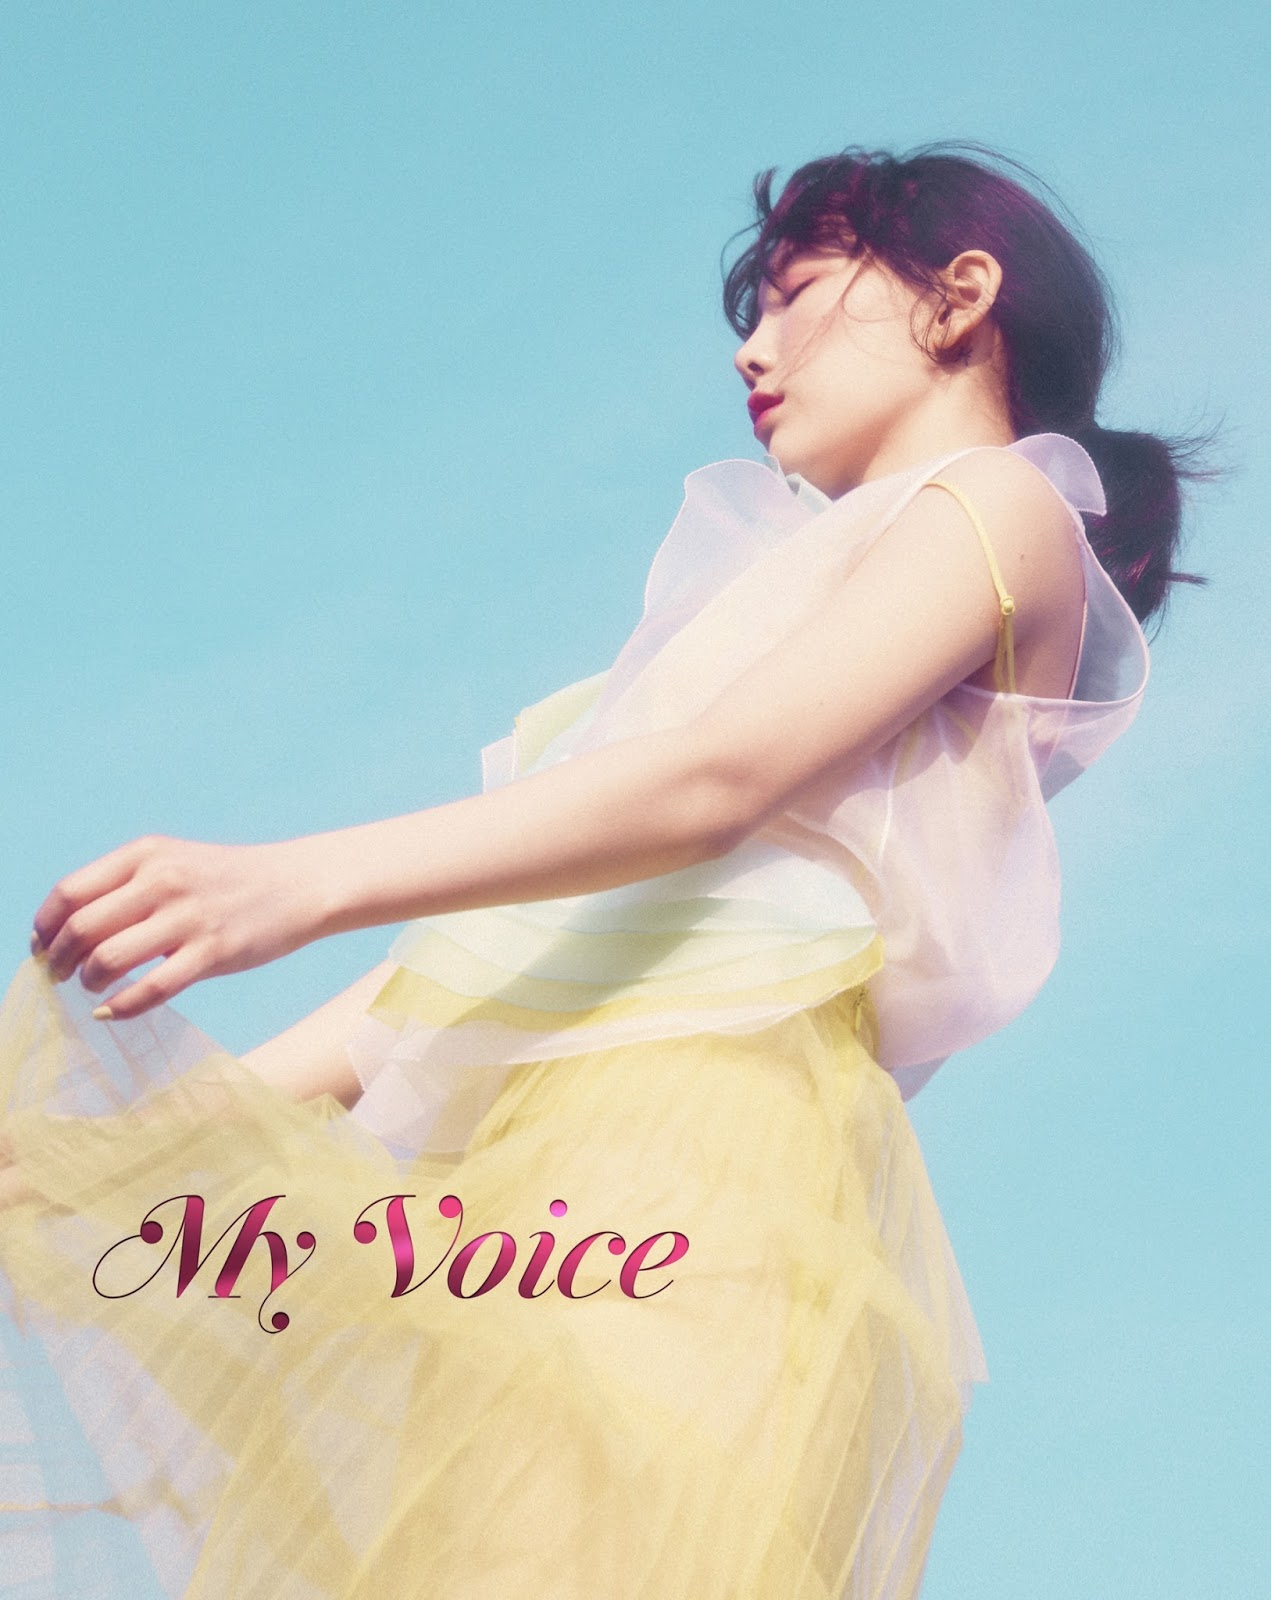 TAEYEON. The 1st Album [My Voice(Deluxe Edition)] Digital Booklet - iTunes (HQ/7PIC) | GGPM